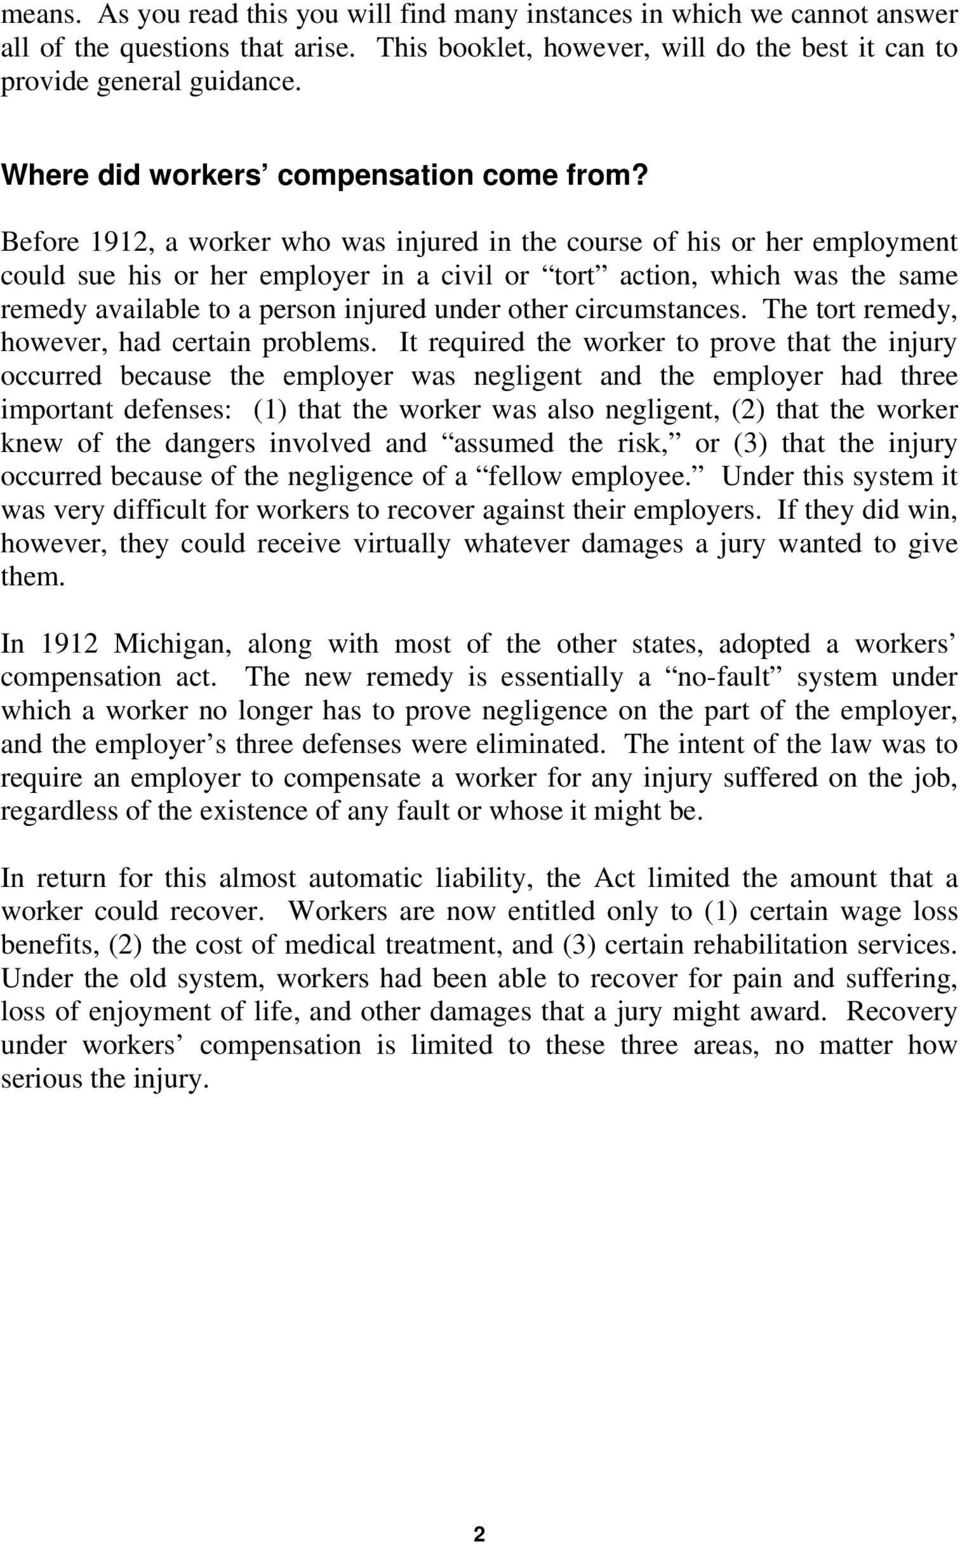 Before 1912, a worker who was injured in the course of his or her employment could sue his or her employer in a civil or tort action, which was the same remedy available to a person injured under